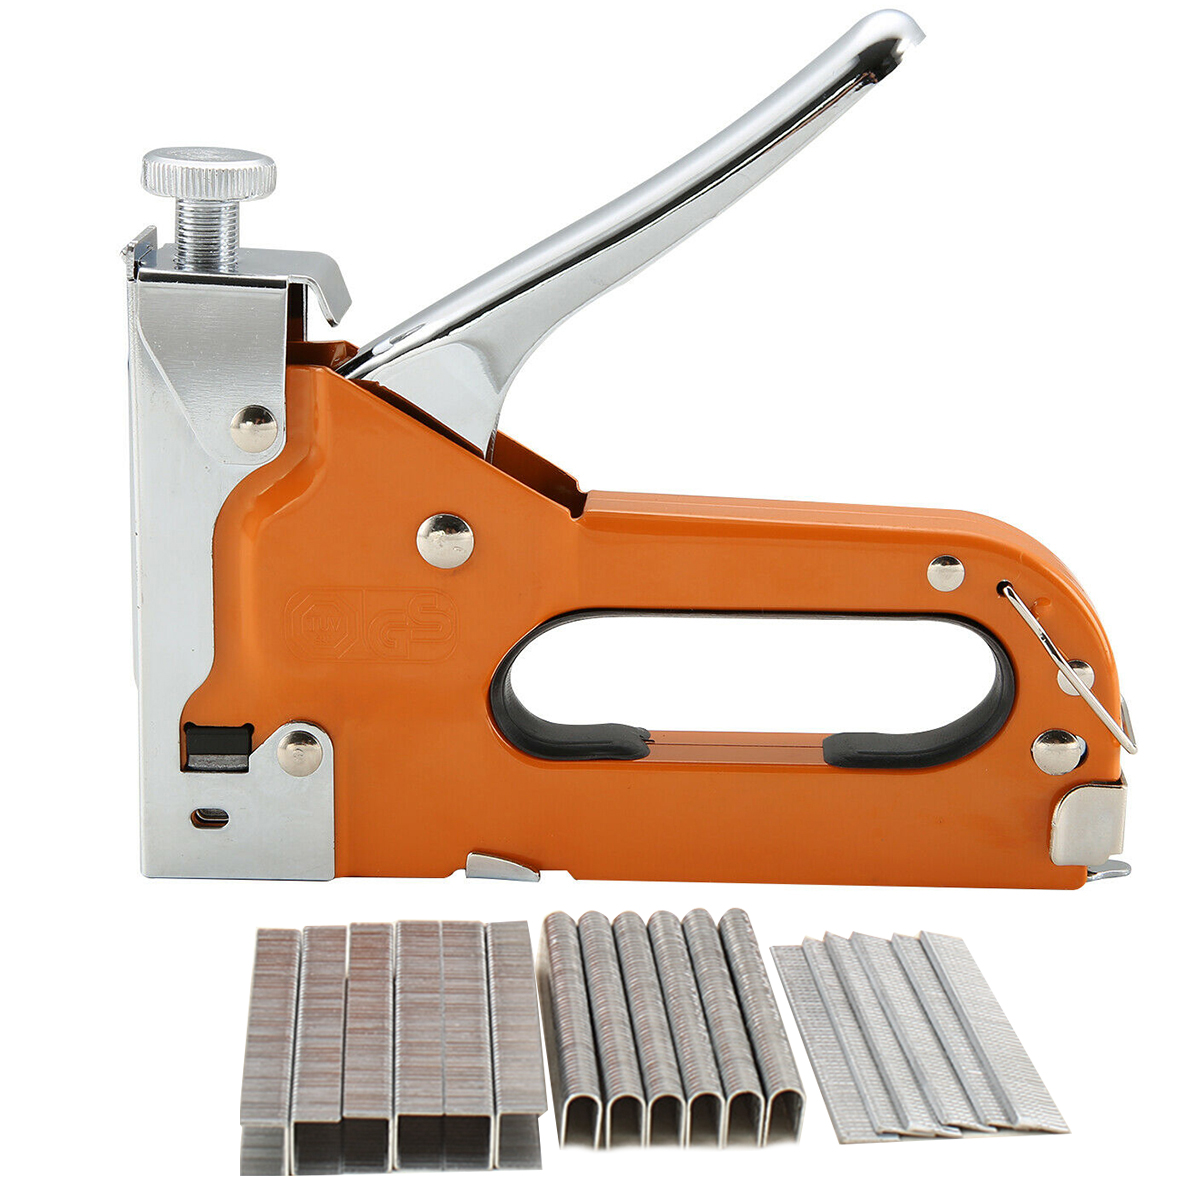 3-IN-1 Heavy Duty Manual Gun Stapler Tacker With 600 Staple For DIY Home Decoration Furniture Stapler Manual Nail